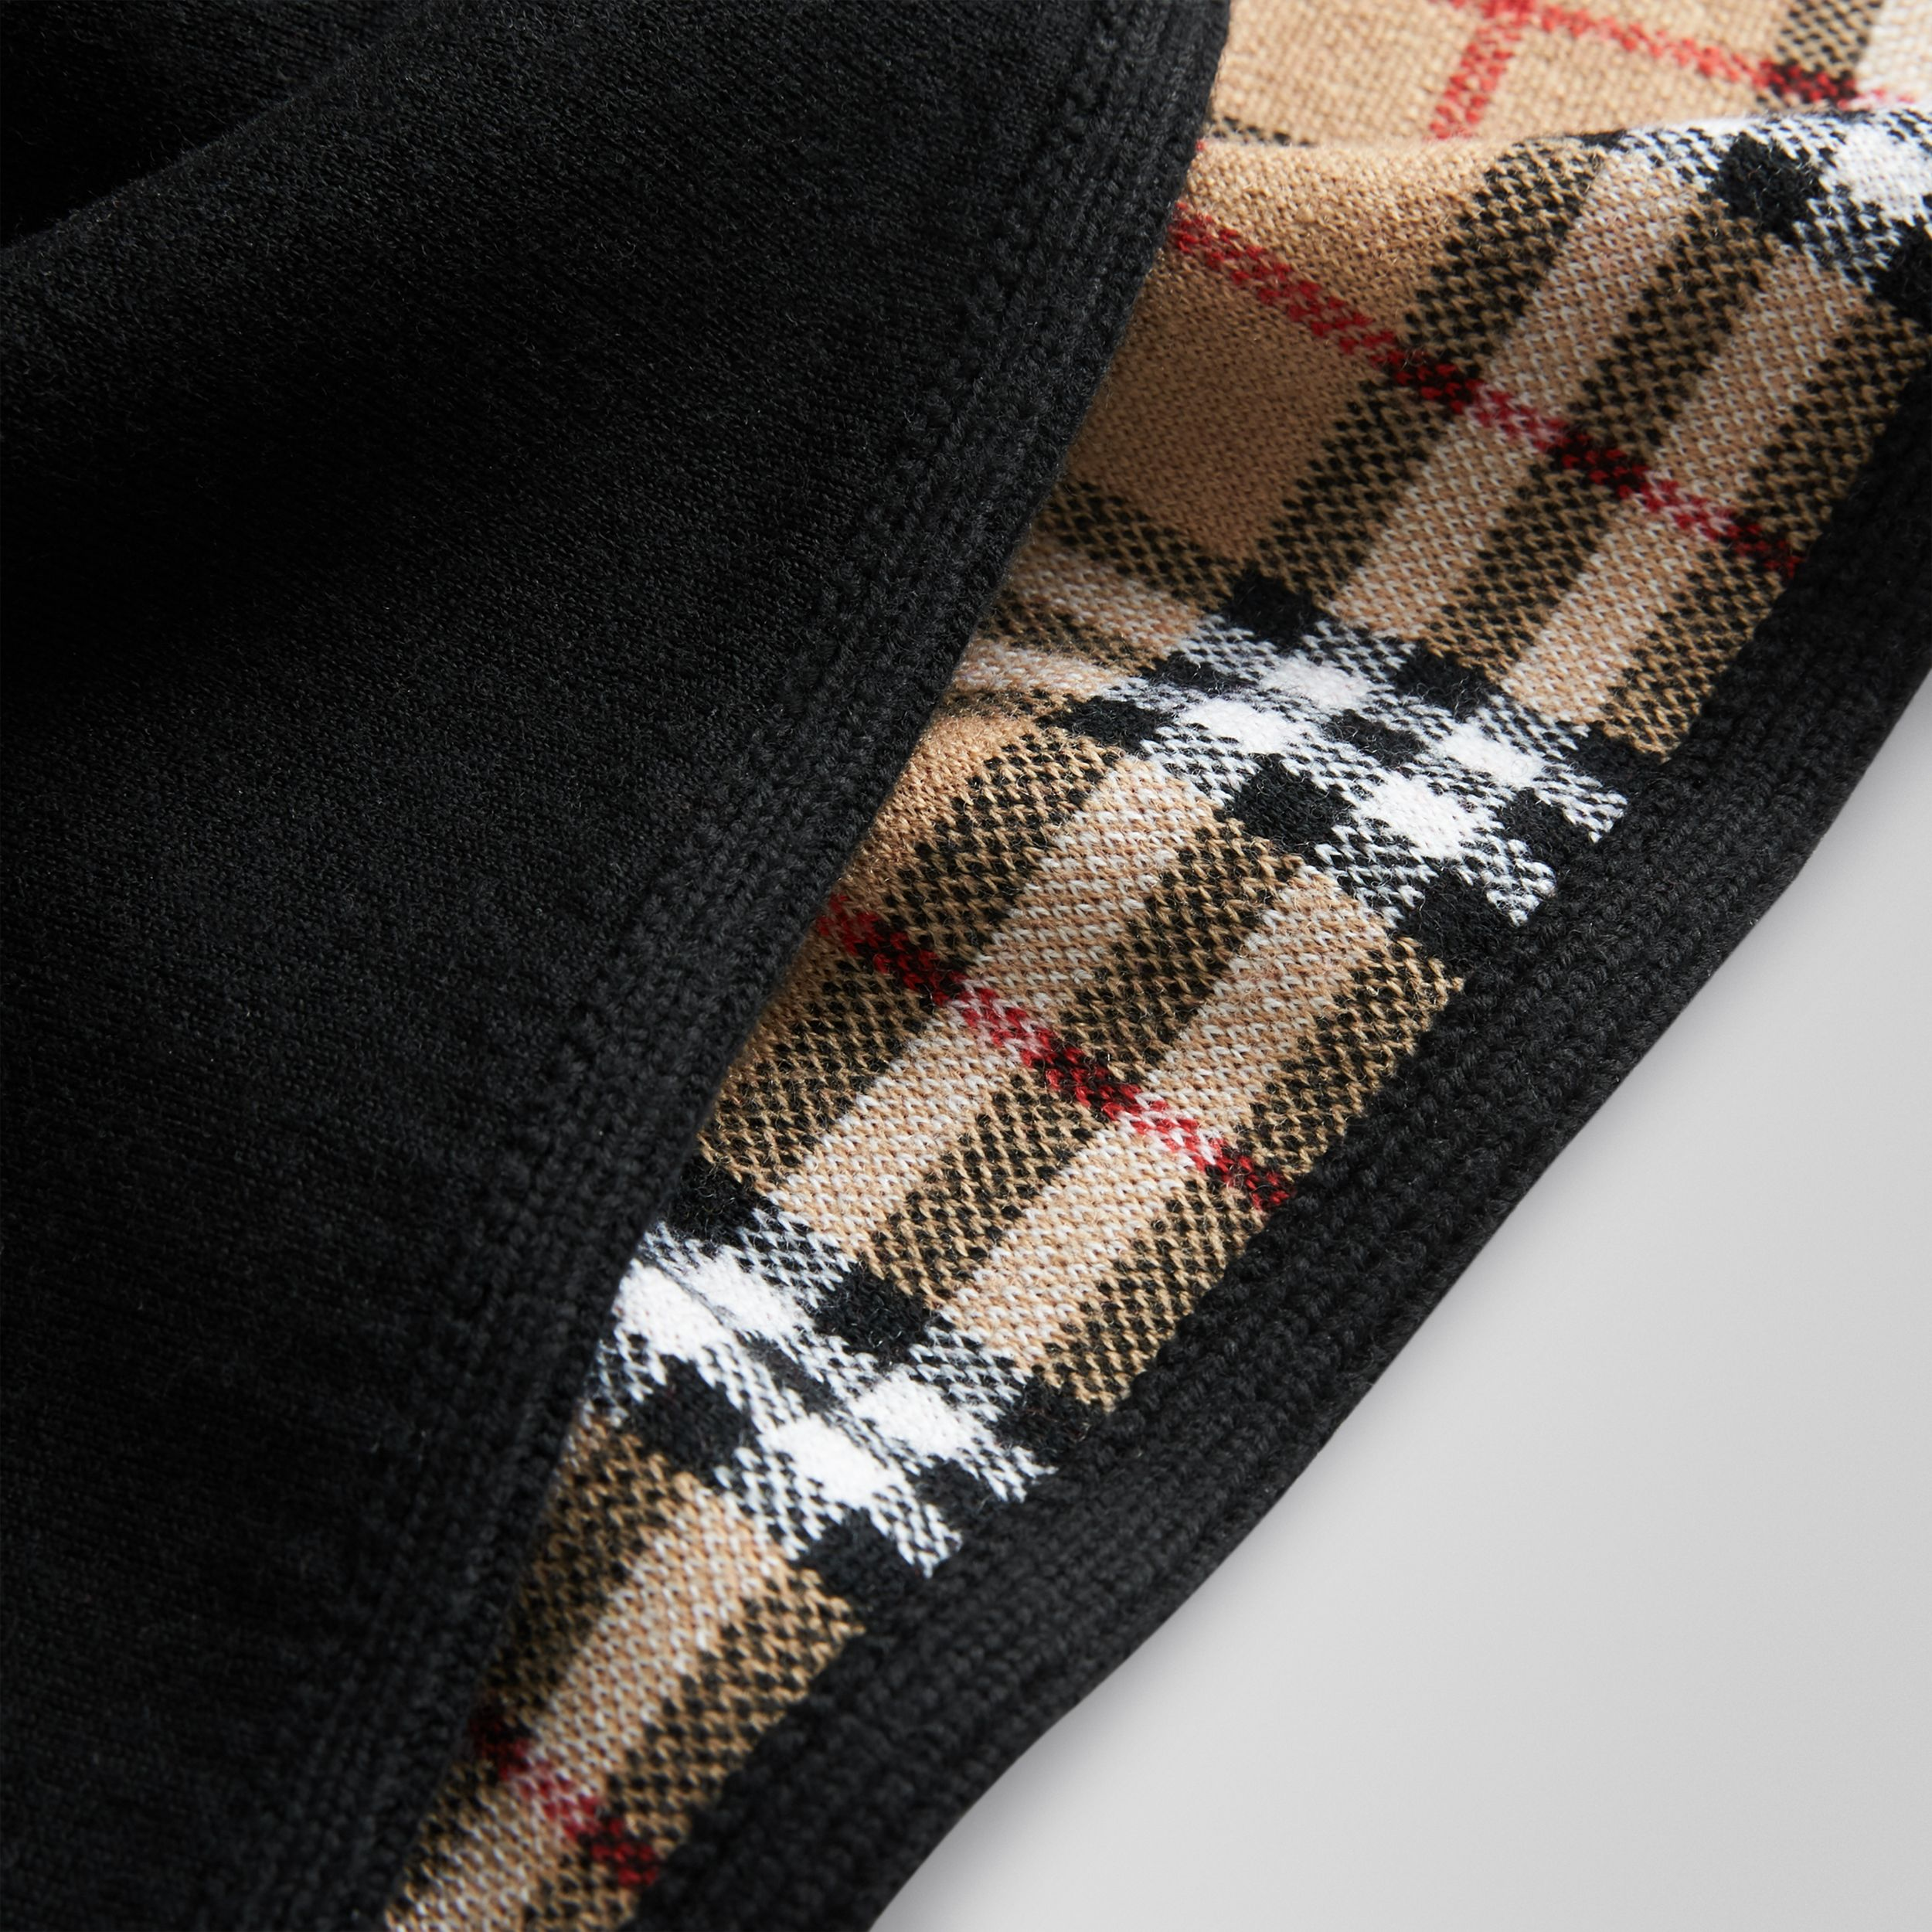 Reversible Vintage Check Merino Wool Jacquard Poncho in Black | Burberry Canada - 2